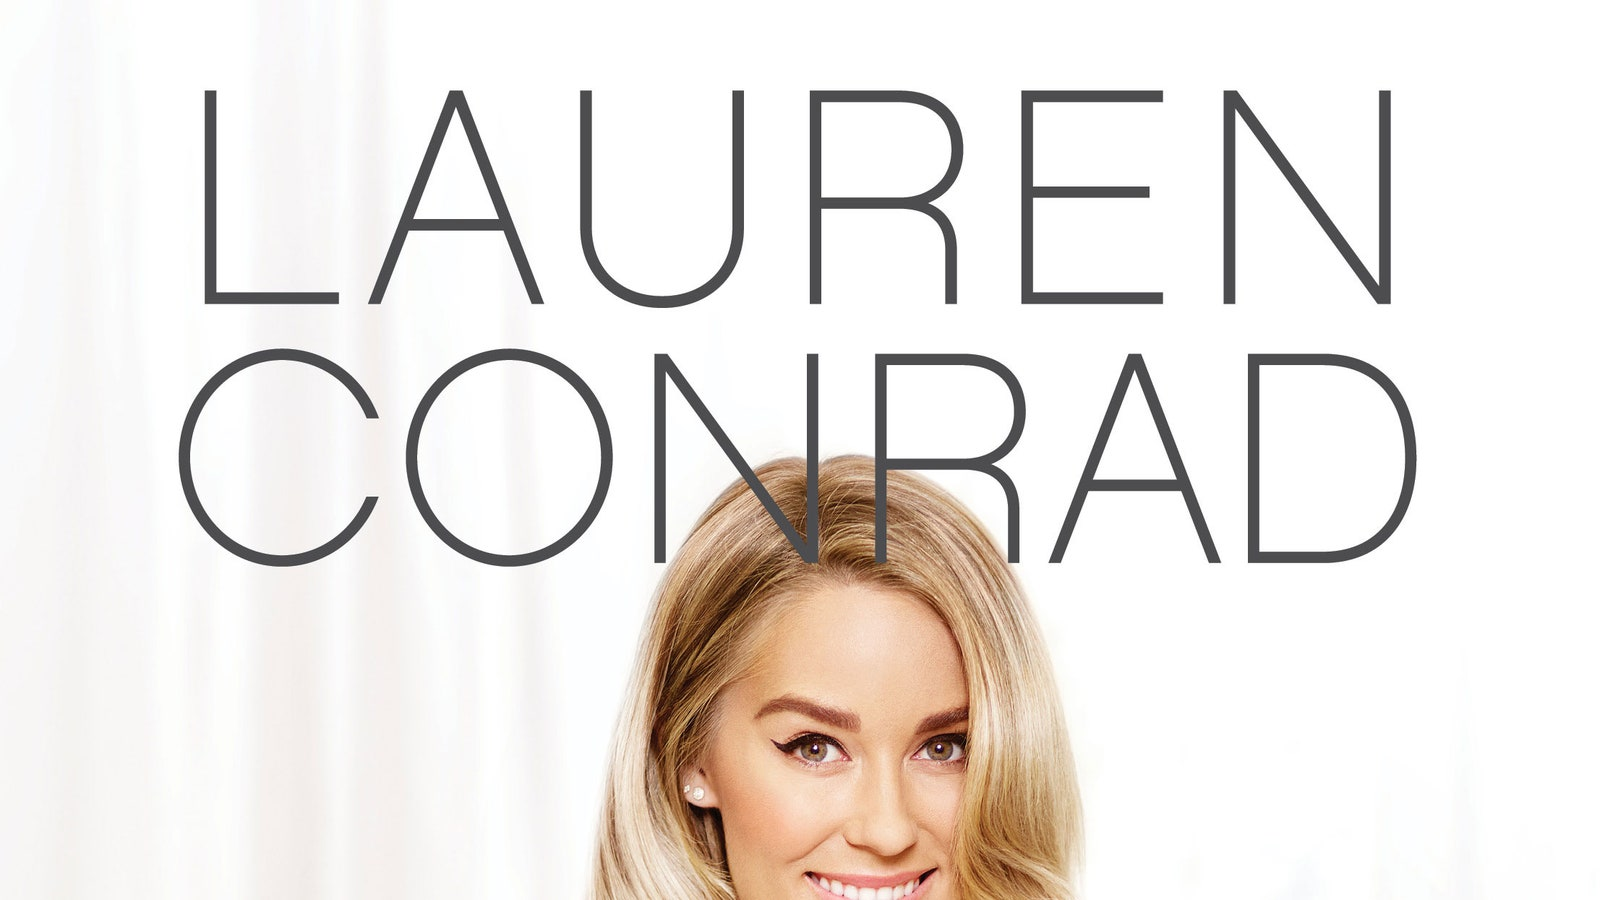 Lauren conrad party